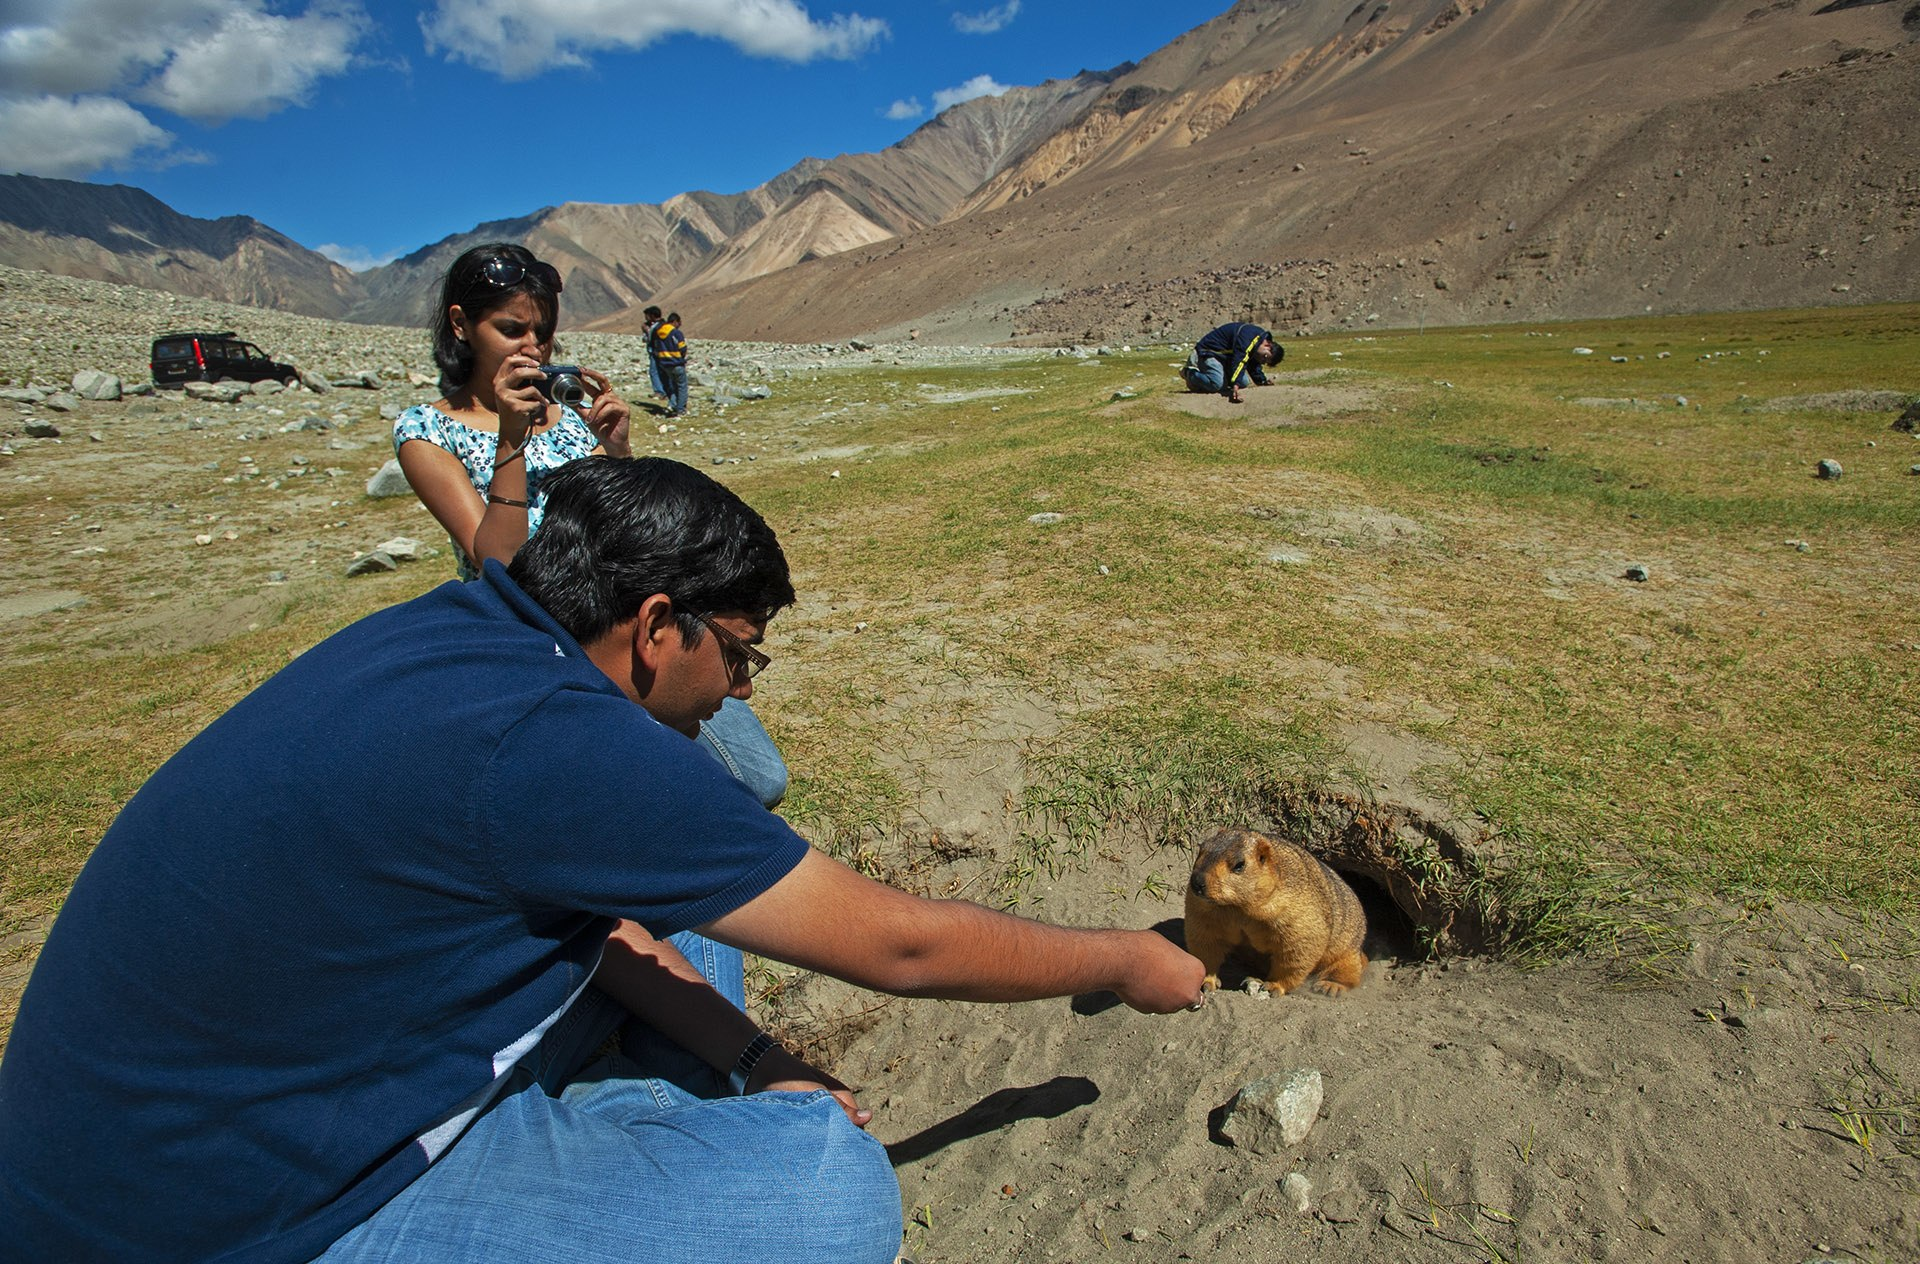 Feeding any wild animal is an unhealthy practice that all tourists must completely stop. Not only is it unhealthy for the marmot or other animal, it creates dependence, leads to increased road kill as animals seek out cars and other human habitation, and can lead to injury or the spread of disease. Photo: Dhritiman Mukherjee